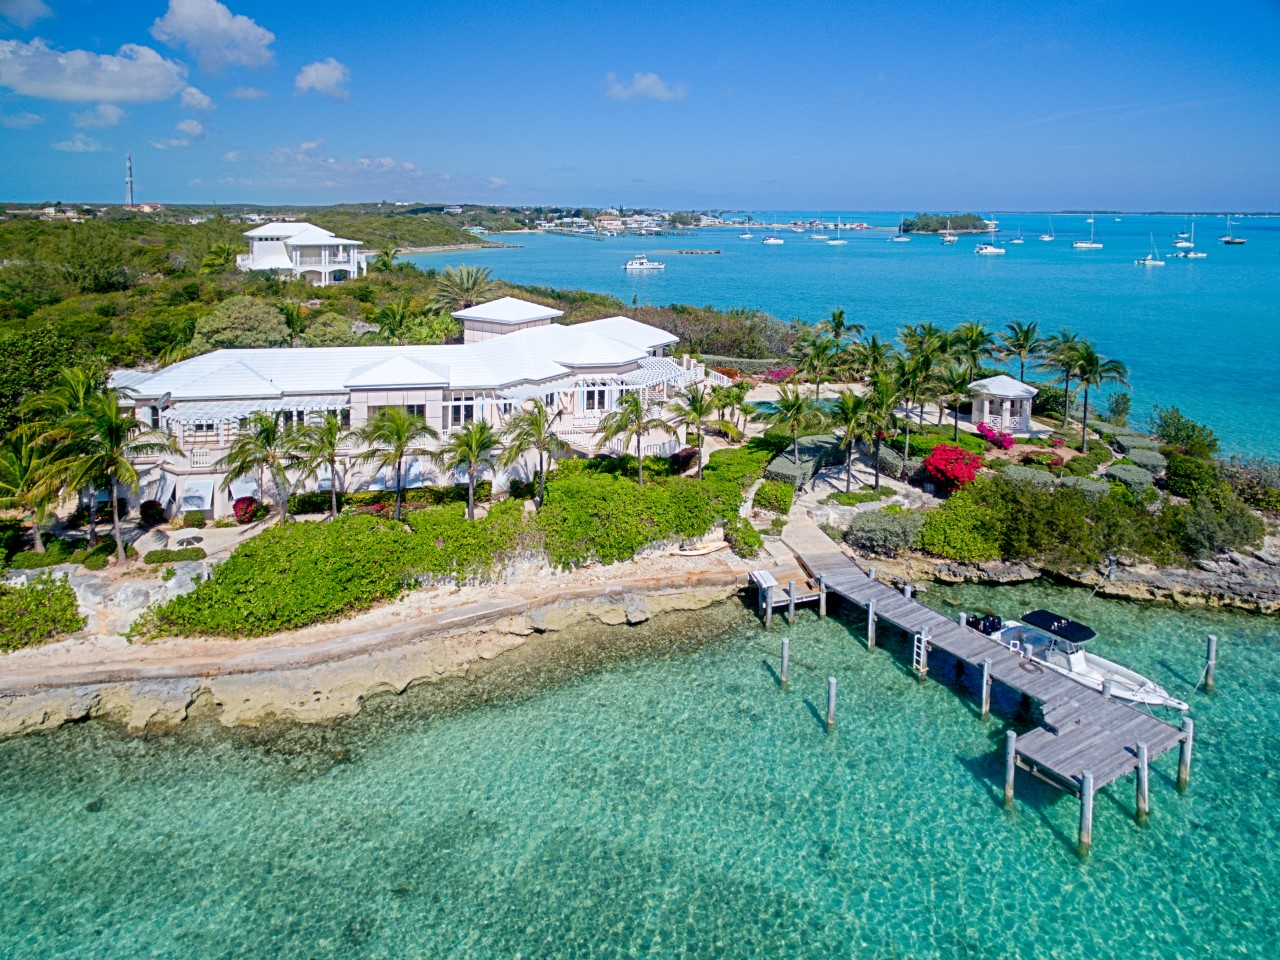 Luxury Rental Villas In Bahamas